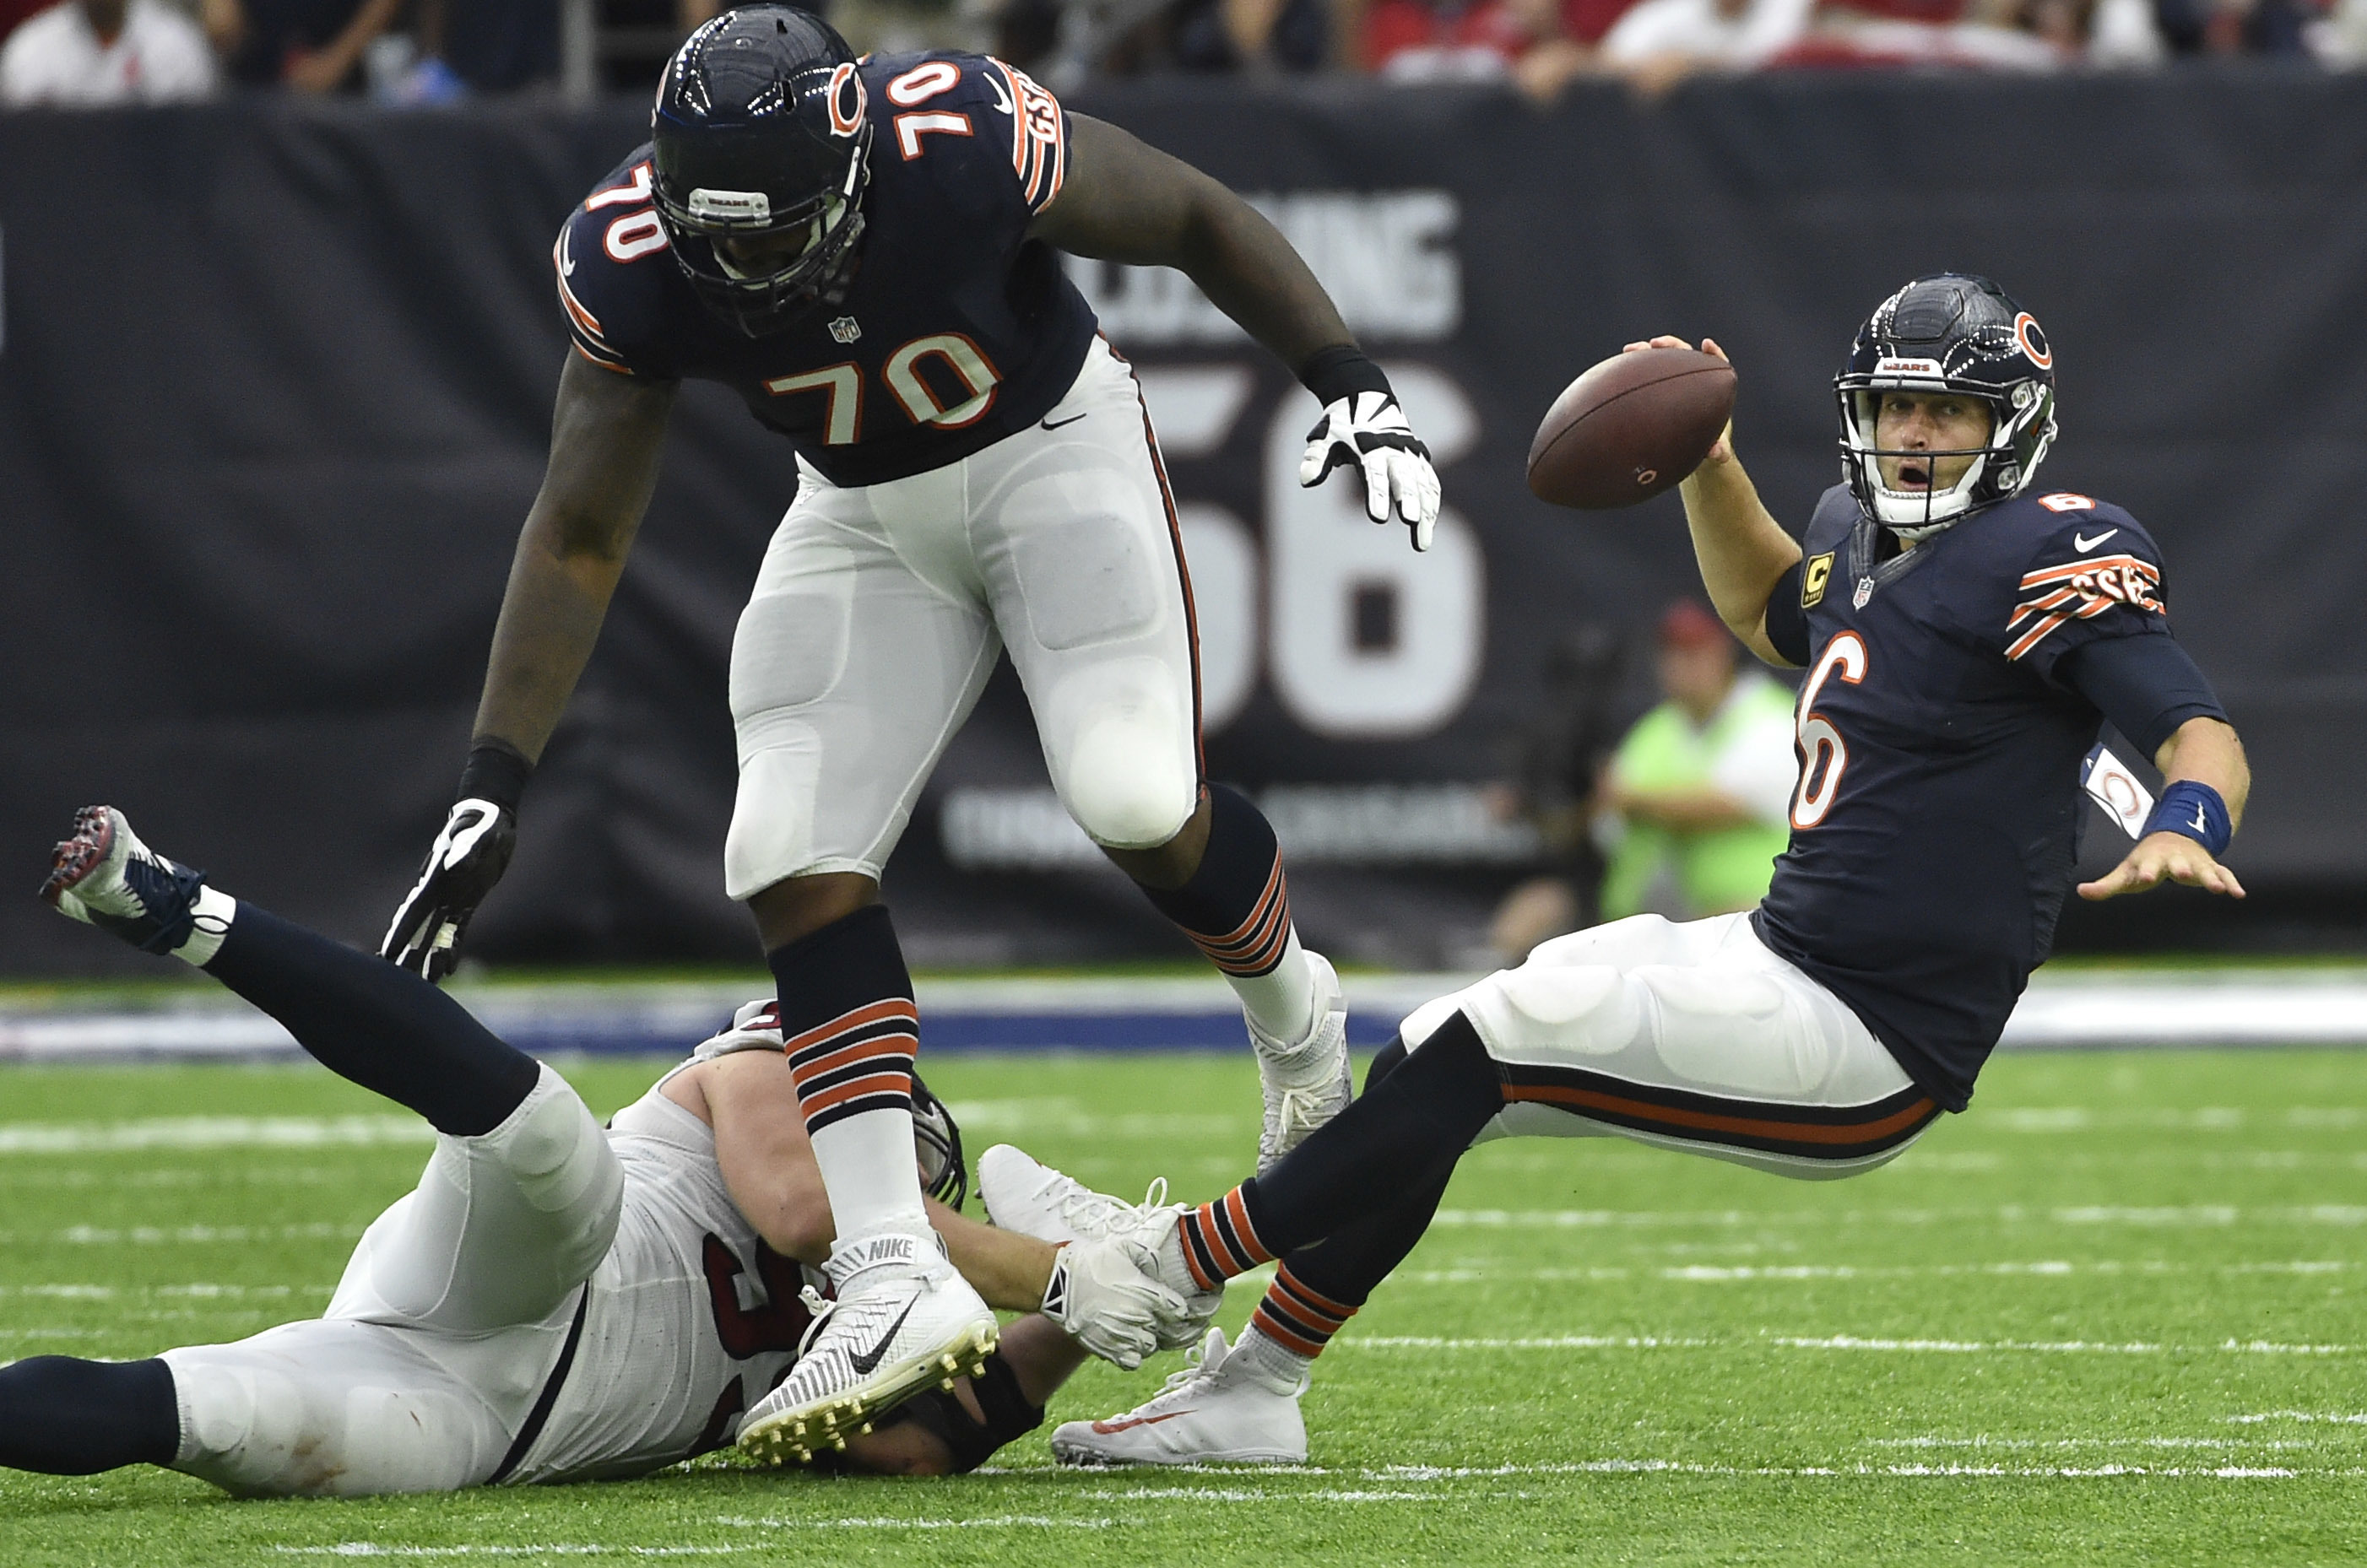 Chicago Bears quarterback Jay Cutler (6) is tripped up by Houston Texans defensive end J.J. Watt, left, during the second half of an NFL football game, Sunday, Sept. 11, 2016, in Houston. Houston won 23-14. (AP Photo/Eric Christian Smith)